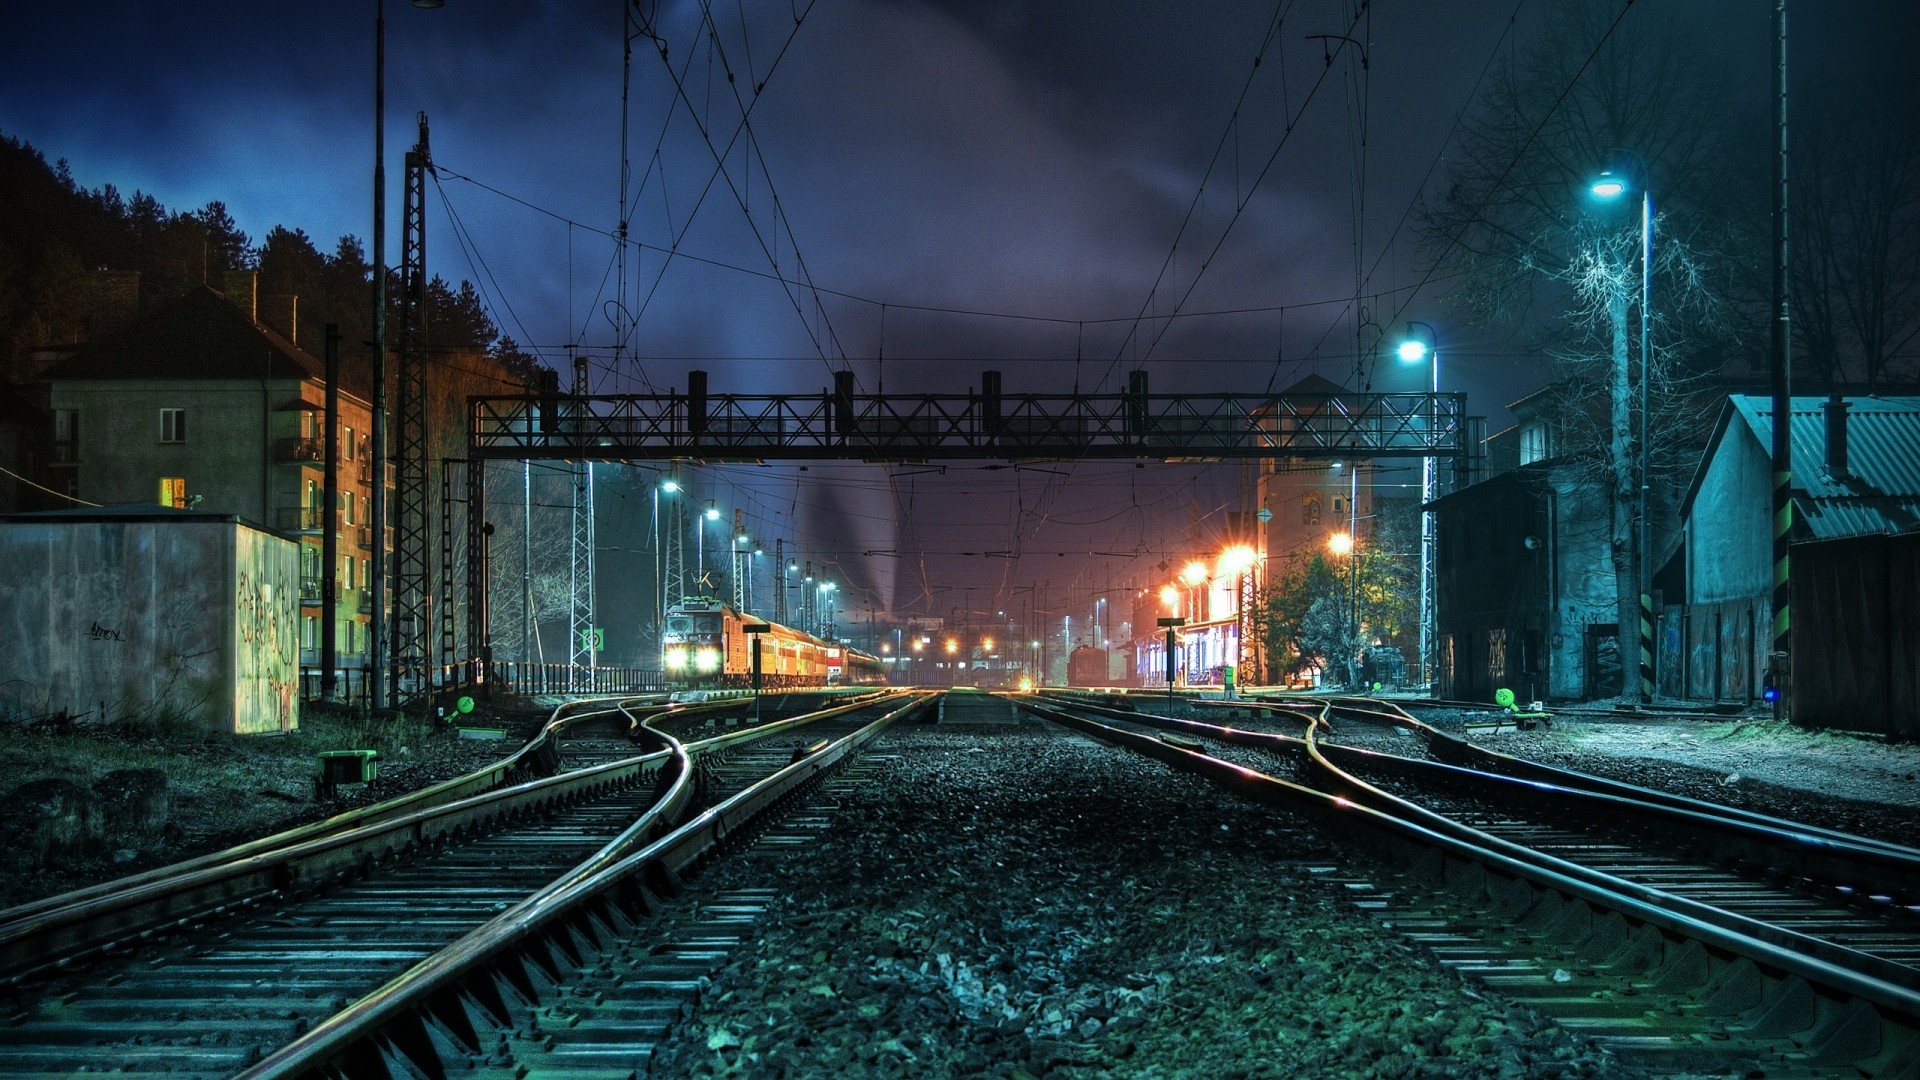 I Like To Waste My Time: Daily Wallpaper: The Train Station